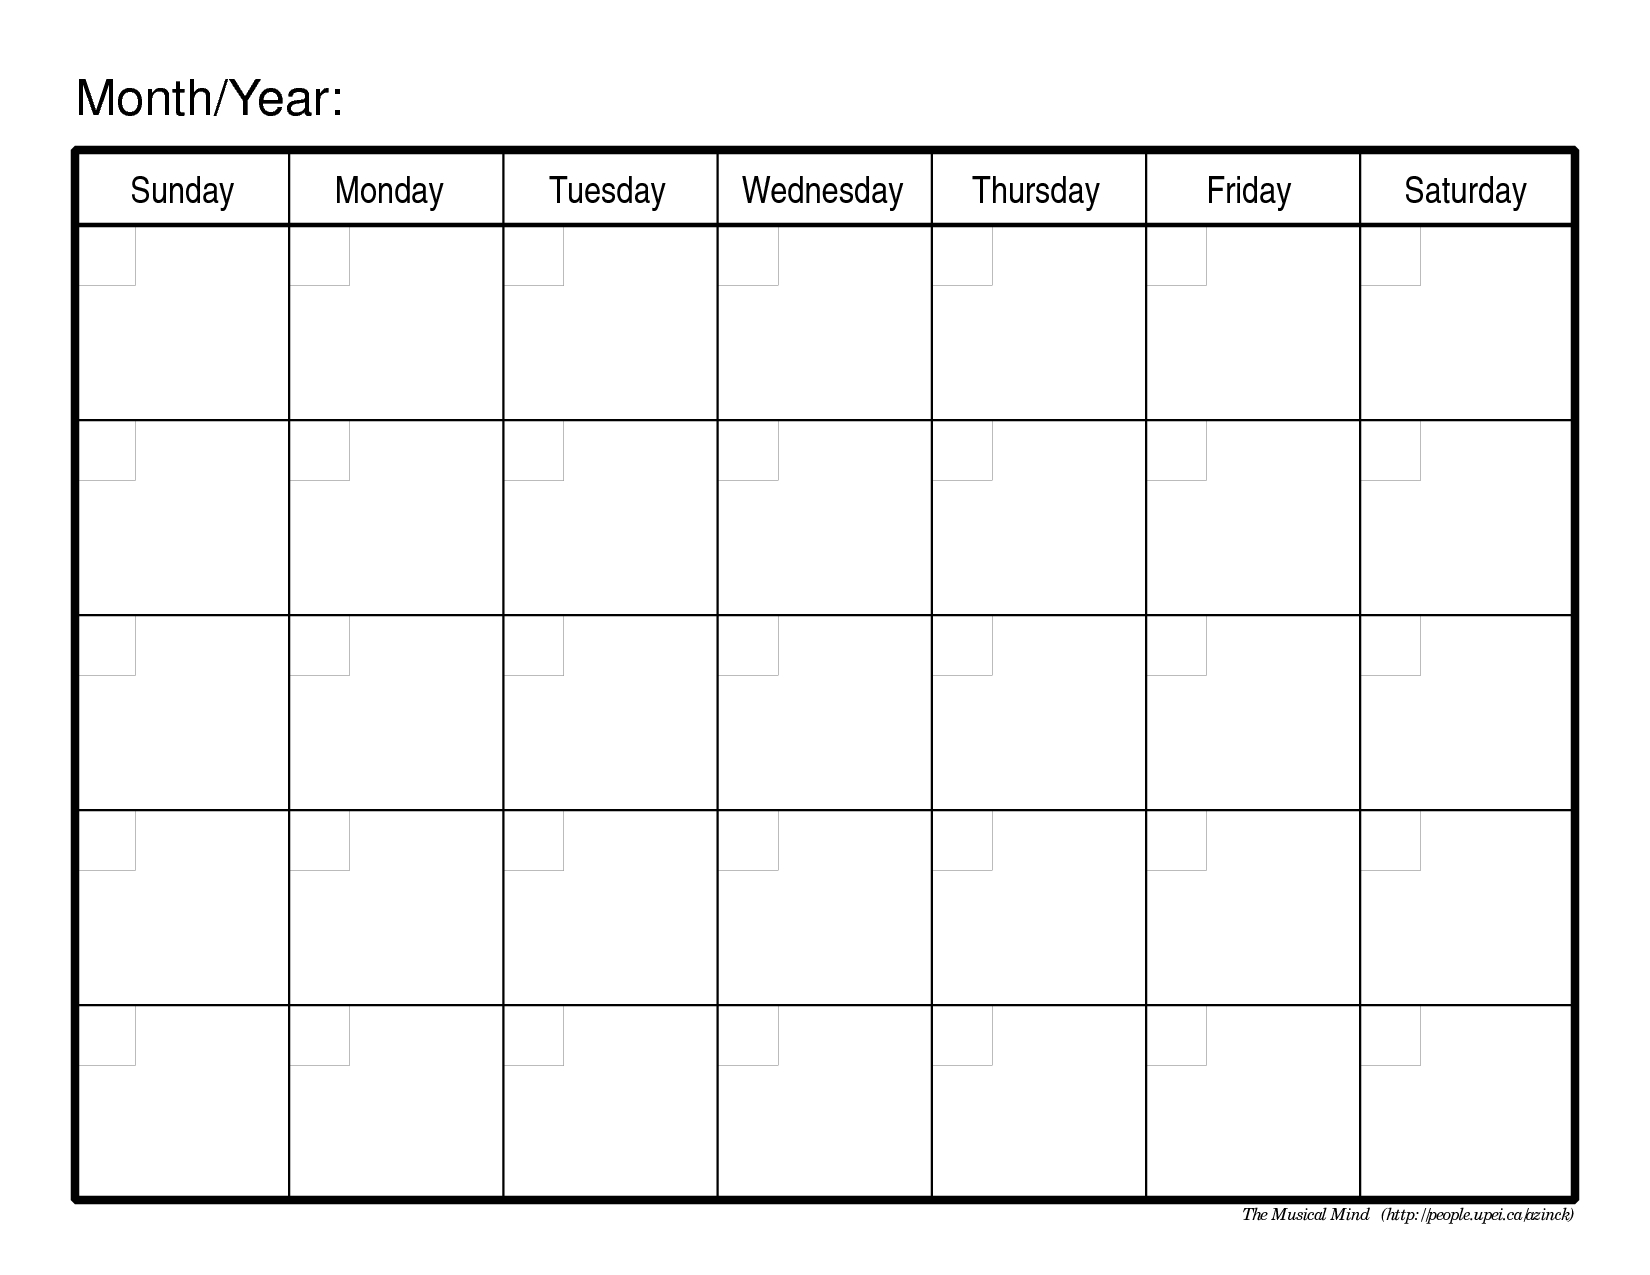 Calendar Templates Printable Free Fieldstation.co | Self Discovery intended for Blank Monthly Calendar Template